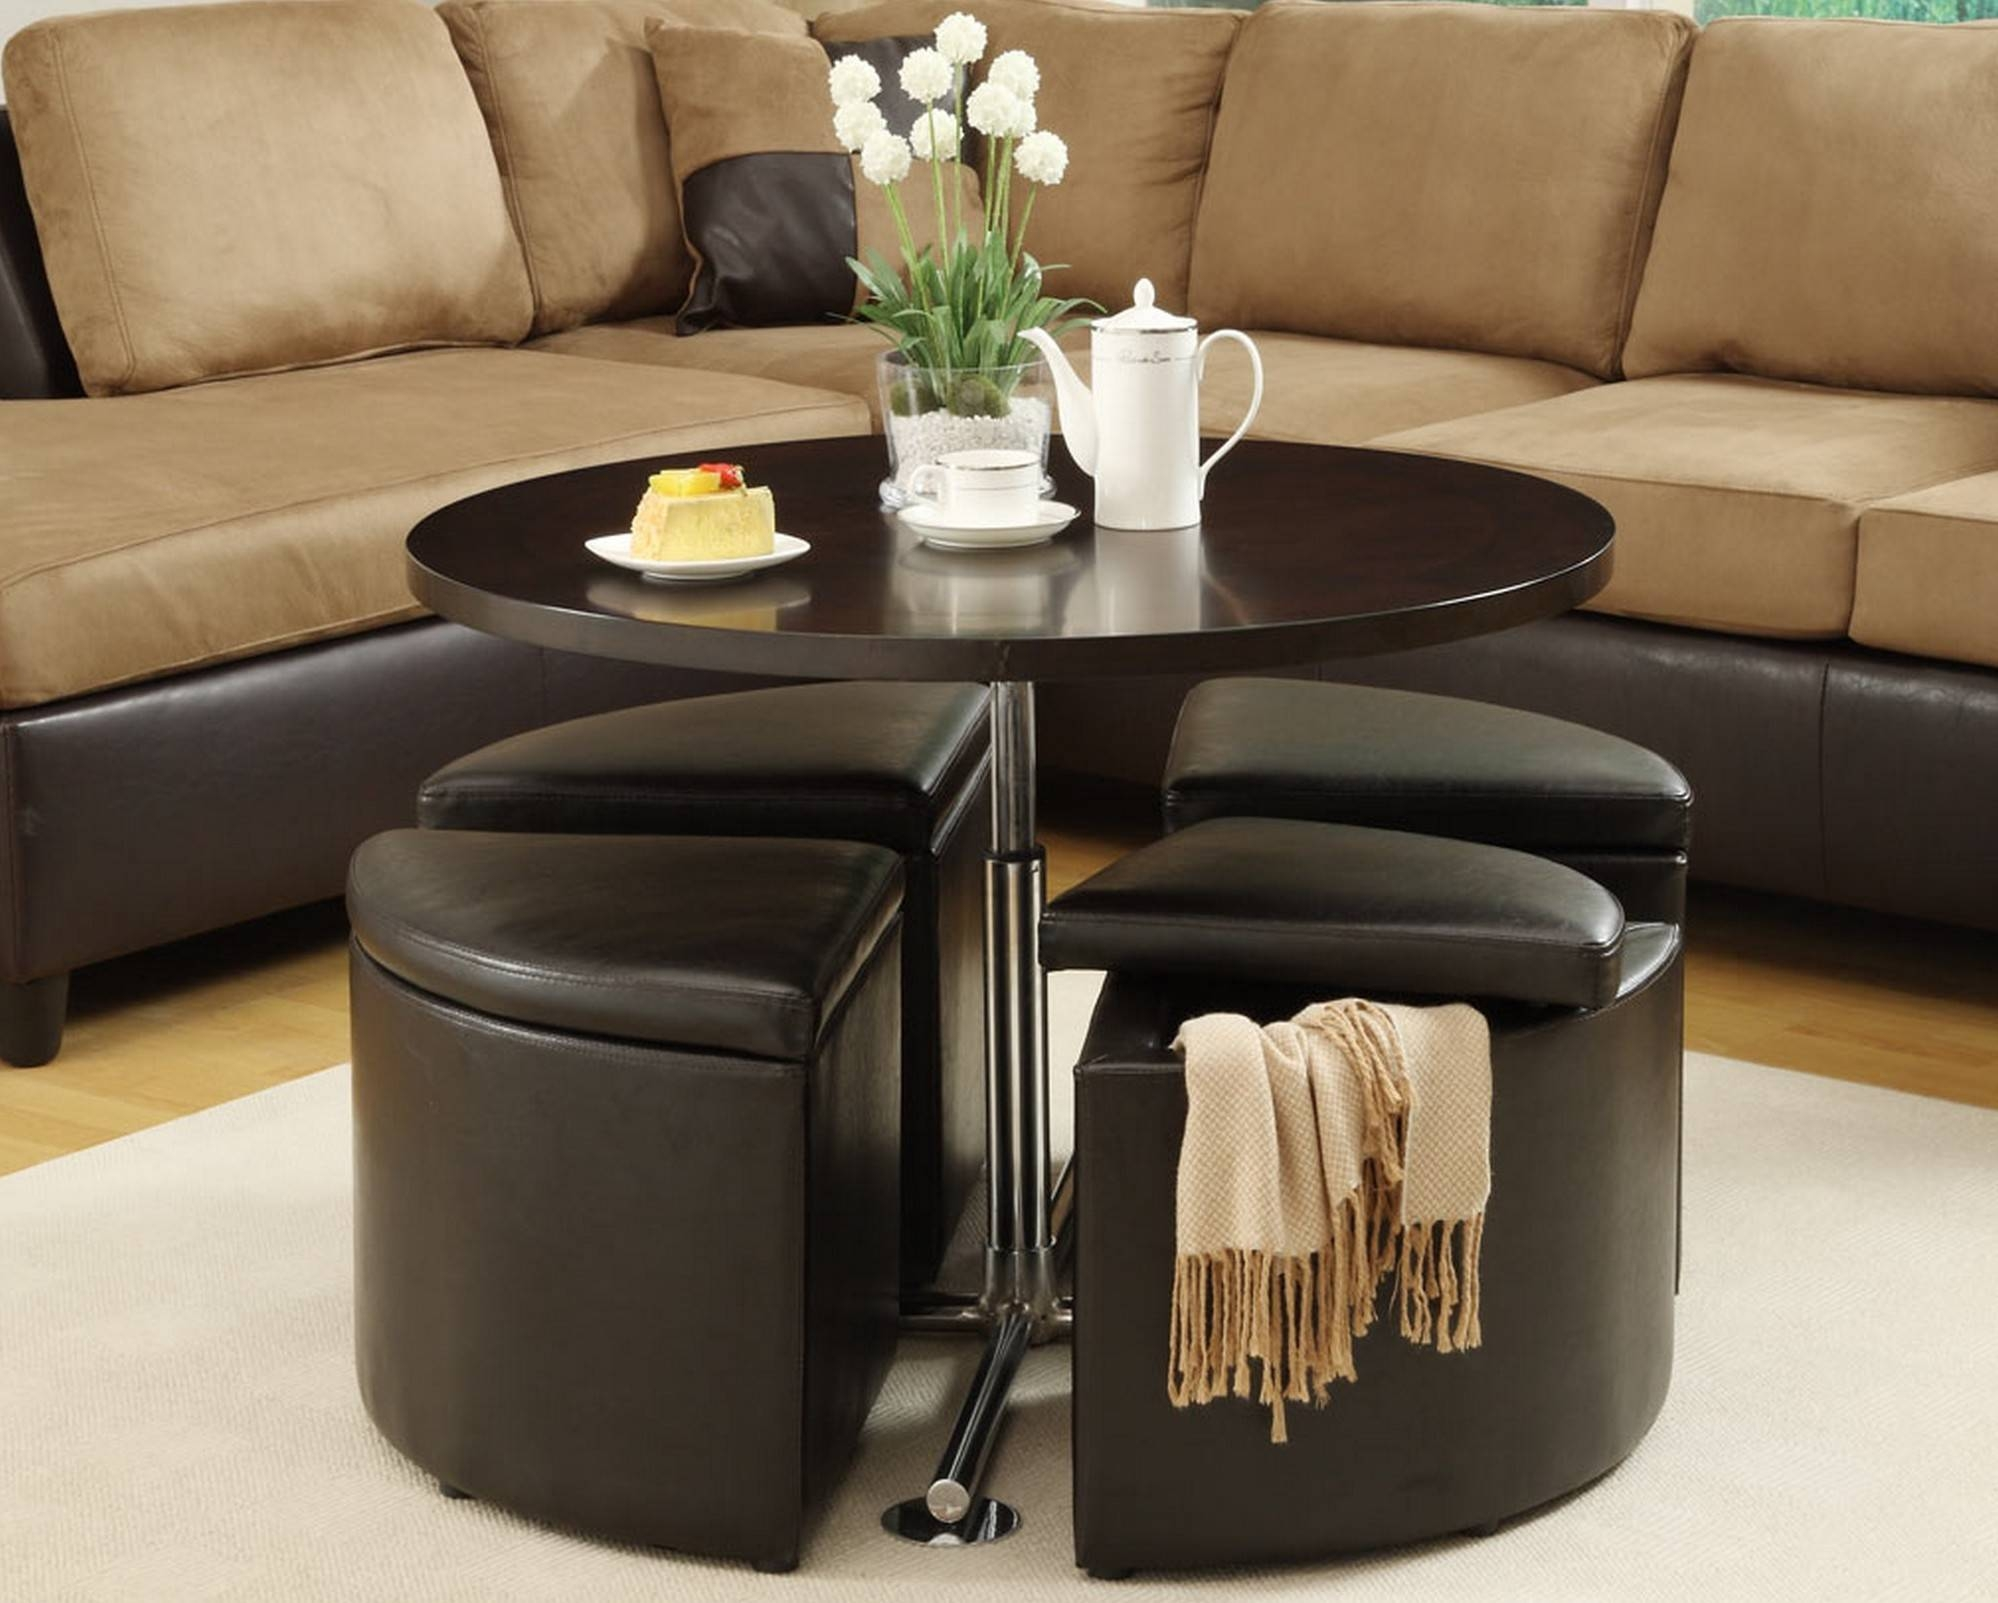 Coffee Tables For Small Spaces – Narrow Coffee Table For Small For Space Coffee Tables (View 6 of 30)